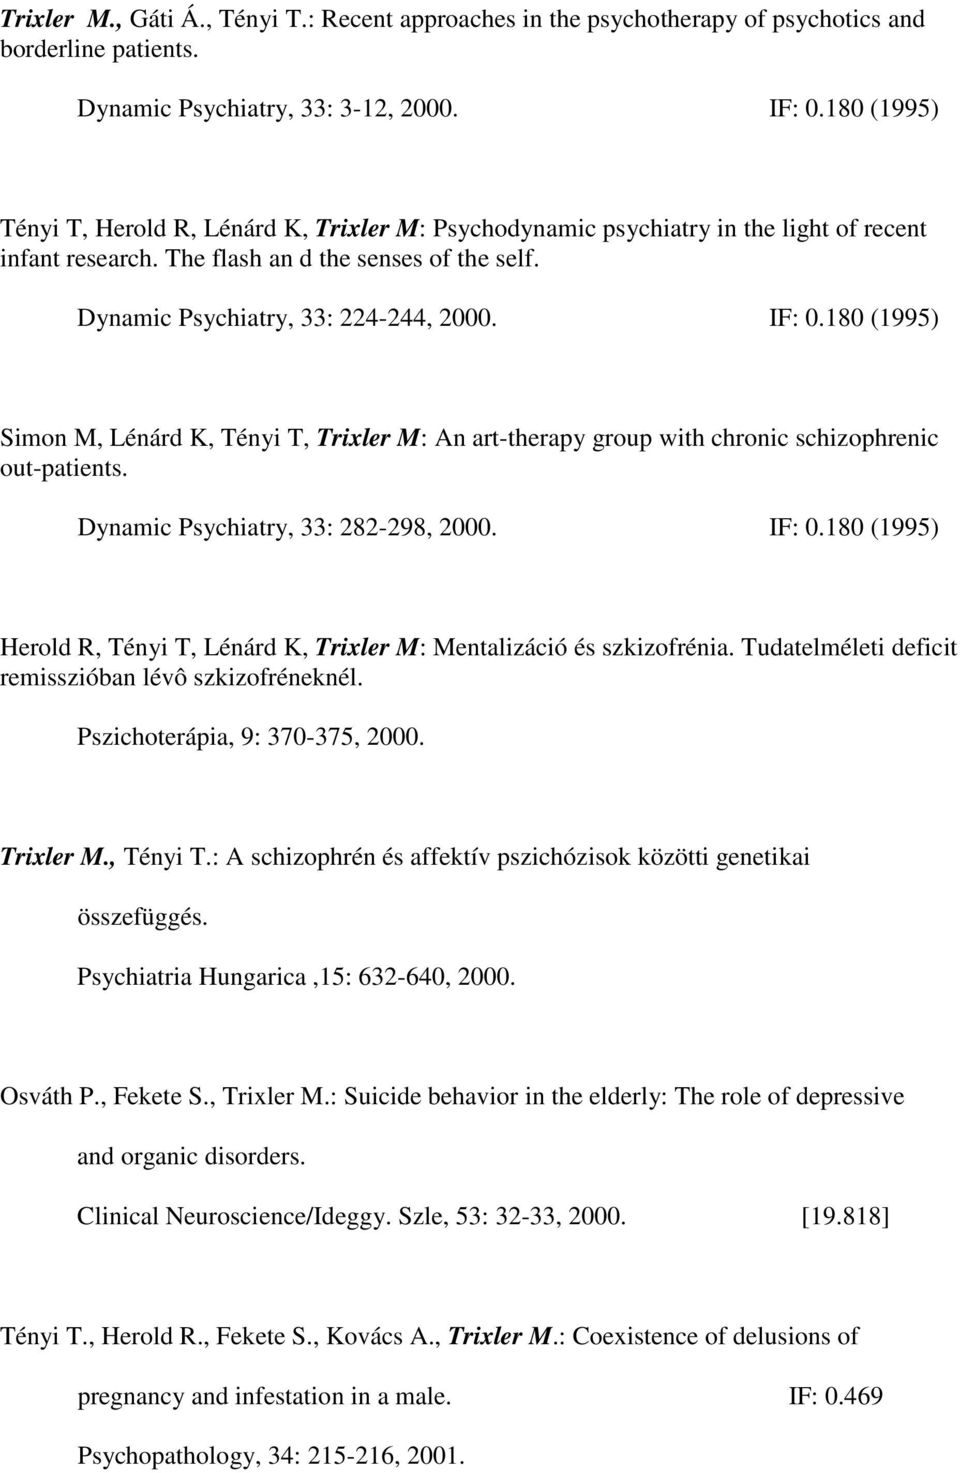 180 (1995) Simon M, Lénárd K, Tényi T, Trixler M: An art-therapy group with chronic schizophrenic out-patients. Dynamic Psychiatry, 33: 282-298, 2000. IF: 0.